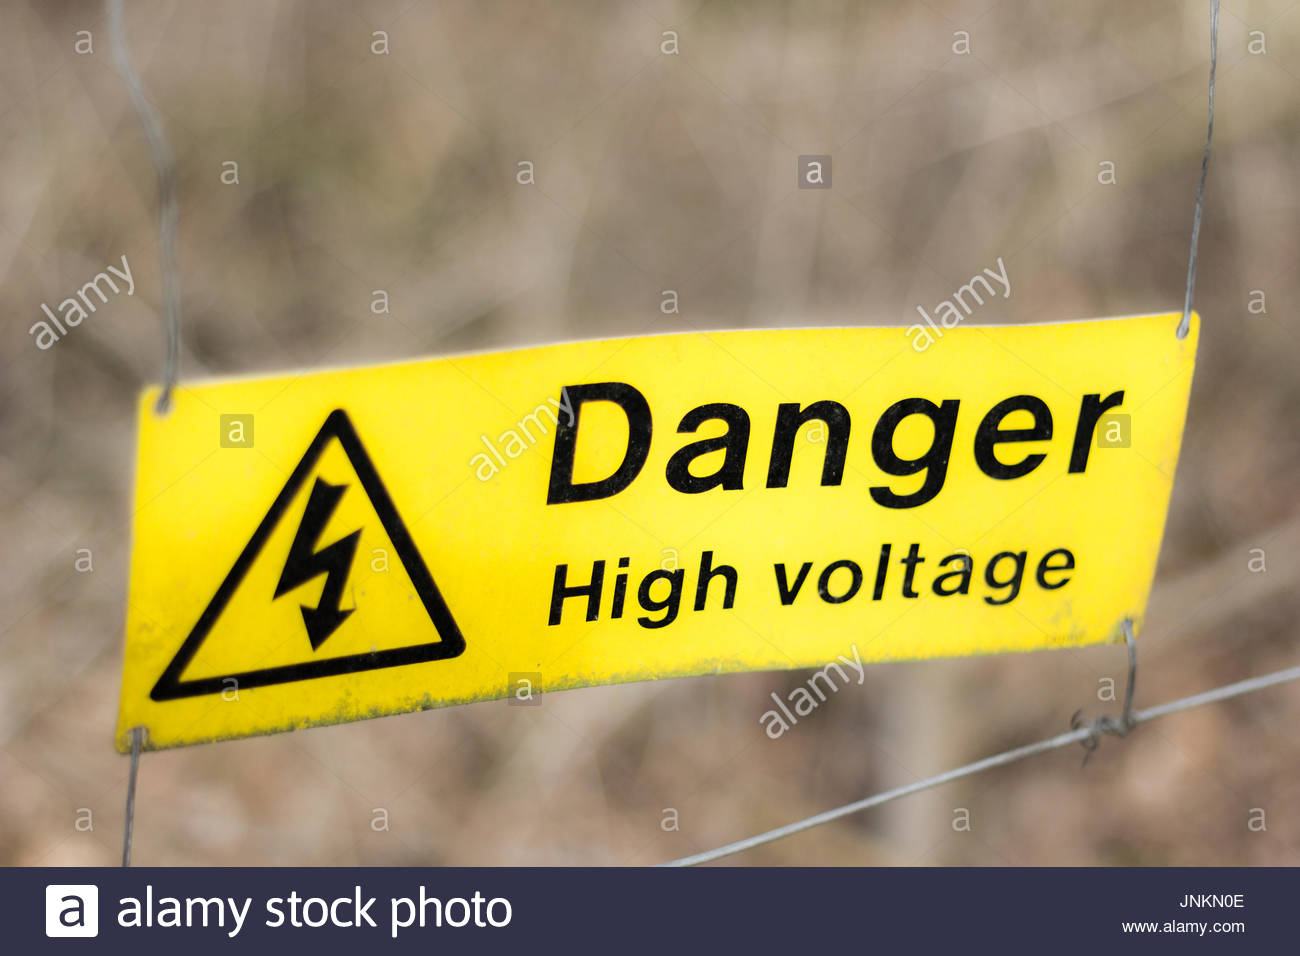 High voltage sign stock photos high voltage sign stock images alamy danger high voltage sign stock image buycottarizona Images